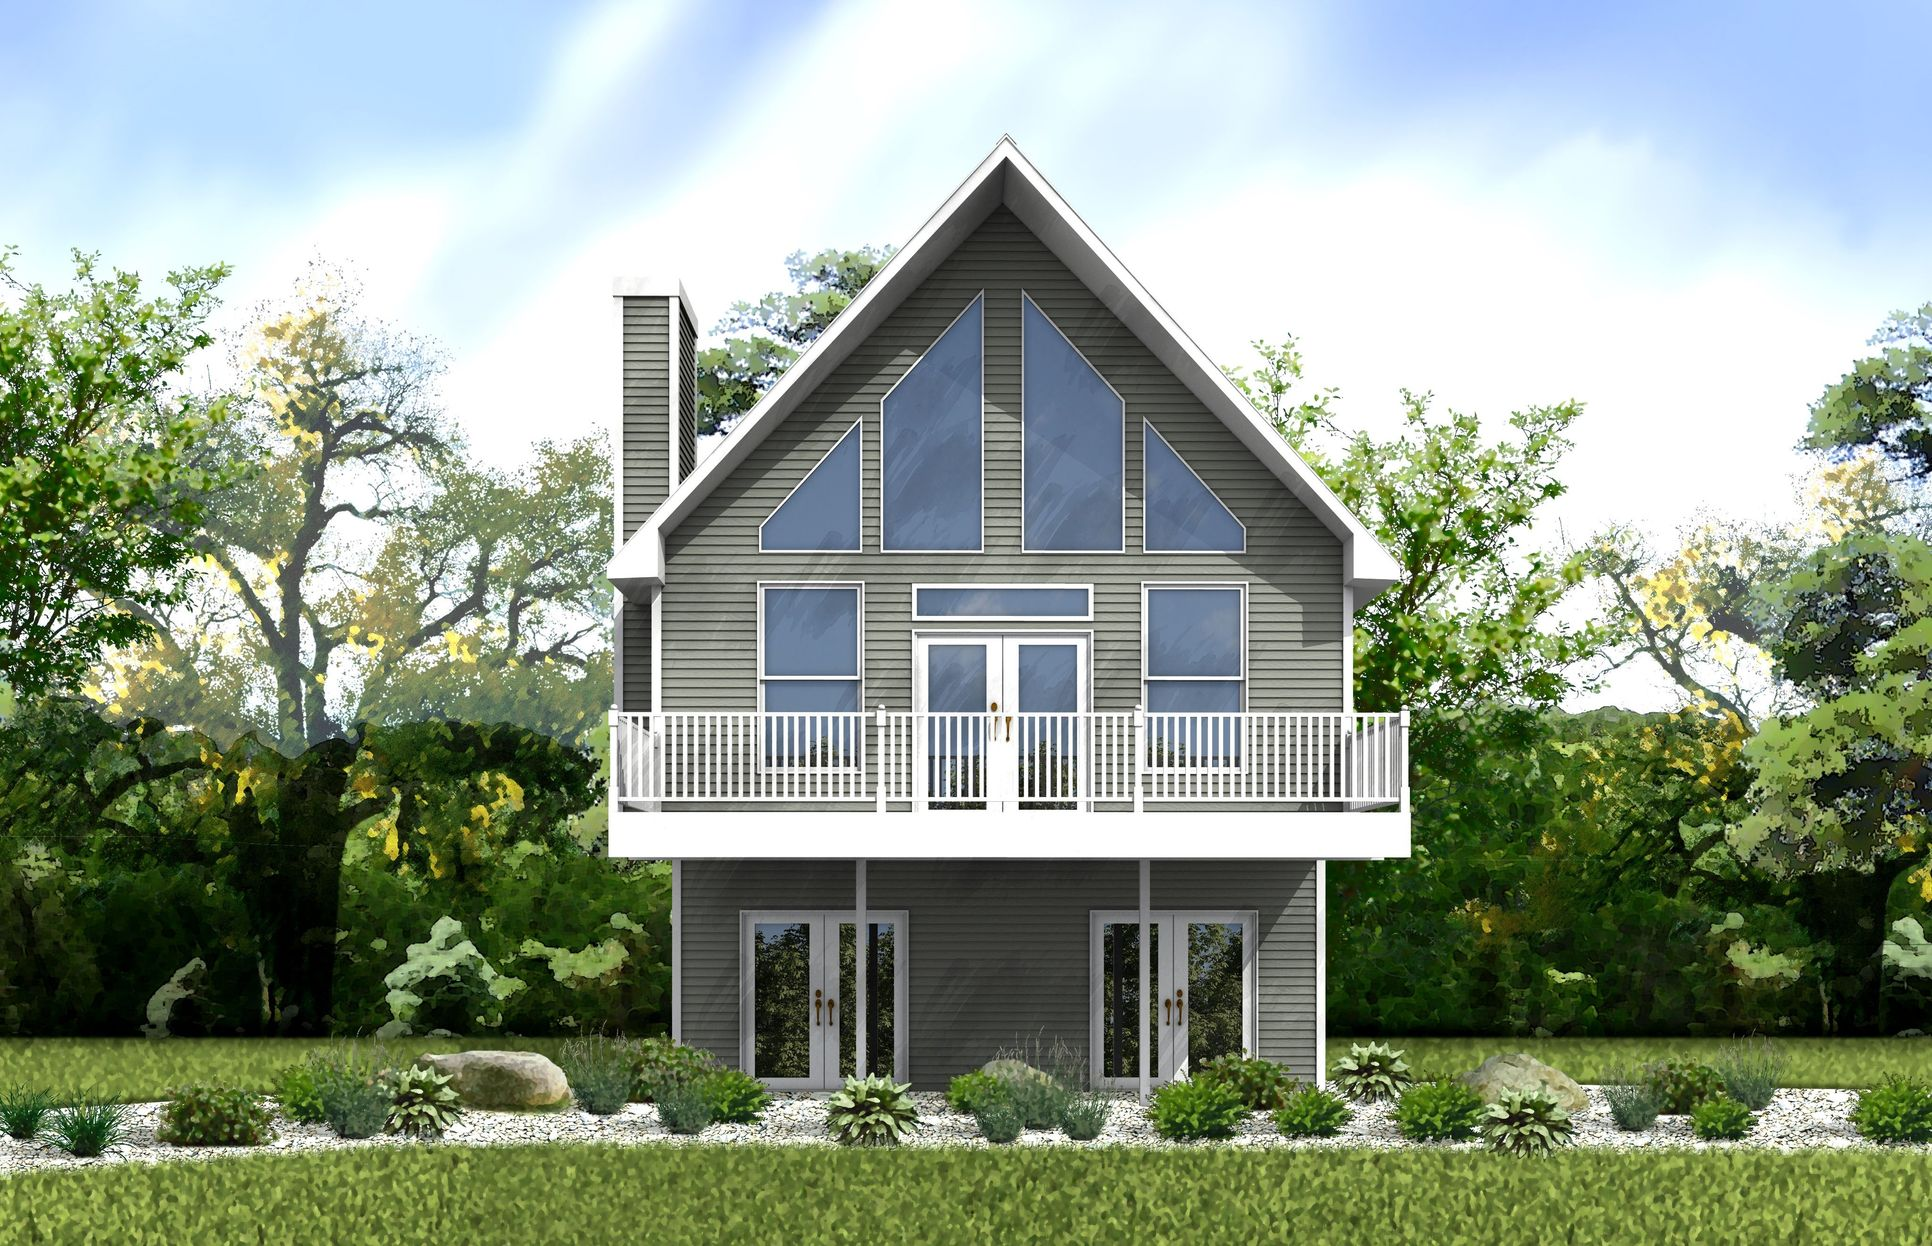 Delaware Rendering:Our Delaware model is a beautiful two story chalet home that allows lots of natural light!